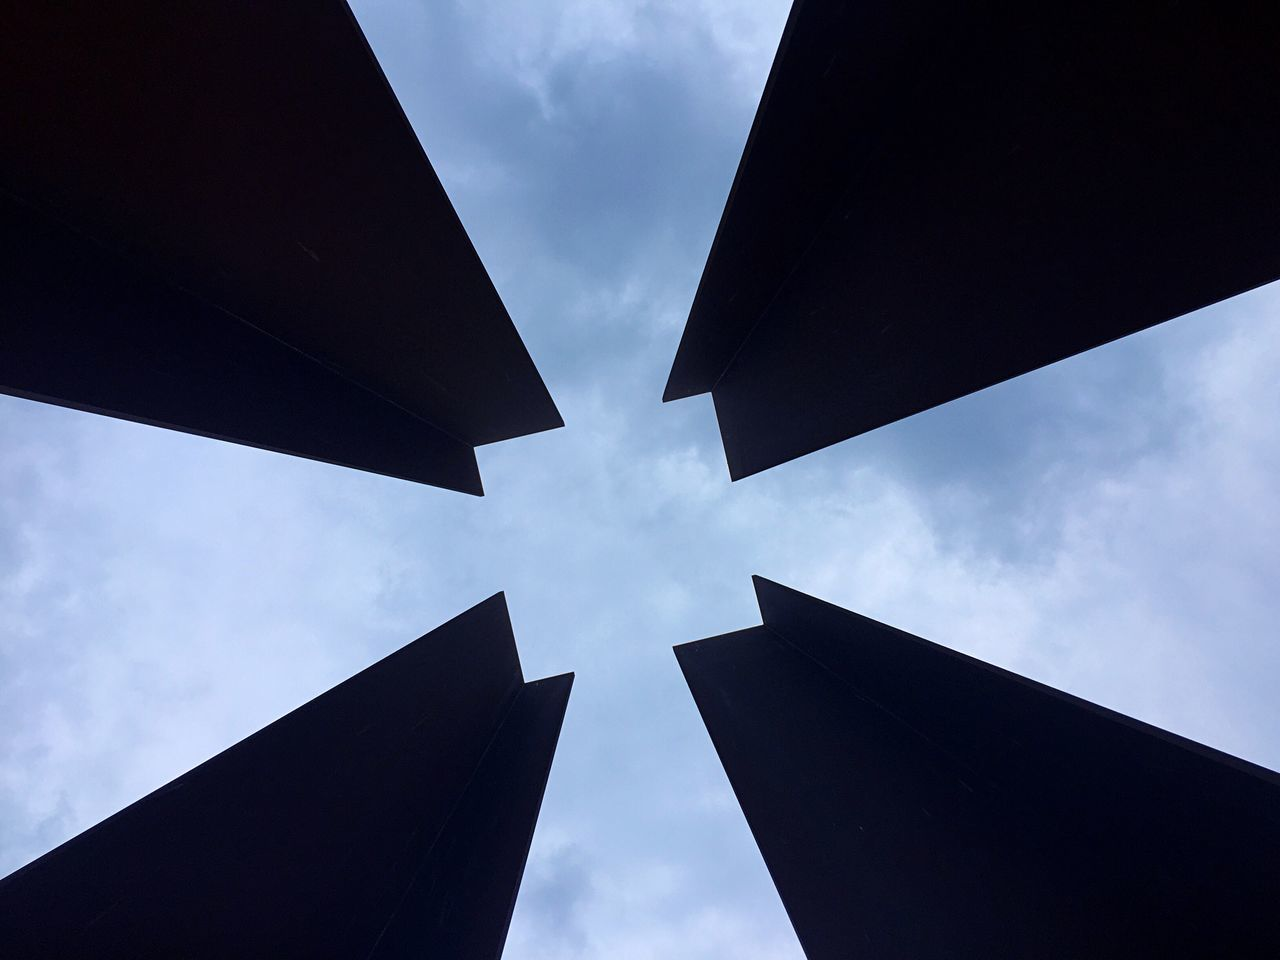 Memorial Berlin Wall Mauerpark Tower From My Point Of View From Below Head Up Look Up Sky Leading Lines Architecture Square Fine Art Photography Cross Pivotal Ideas Radiant My Year My View Capture Berlin Minimalist Architecture Welcome To Black